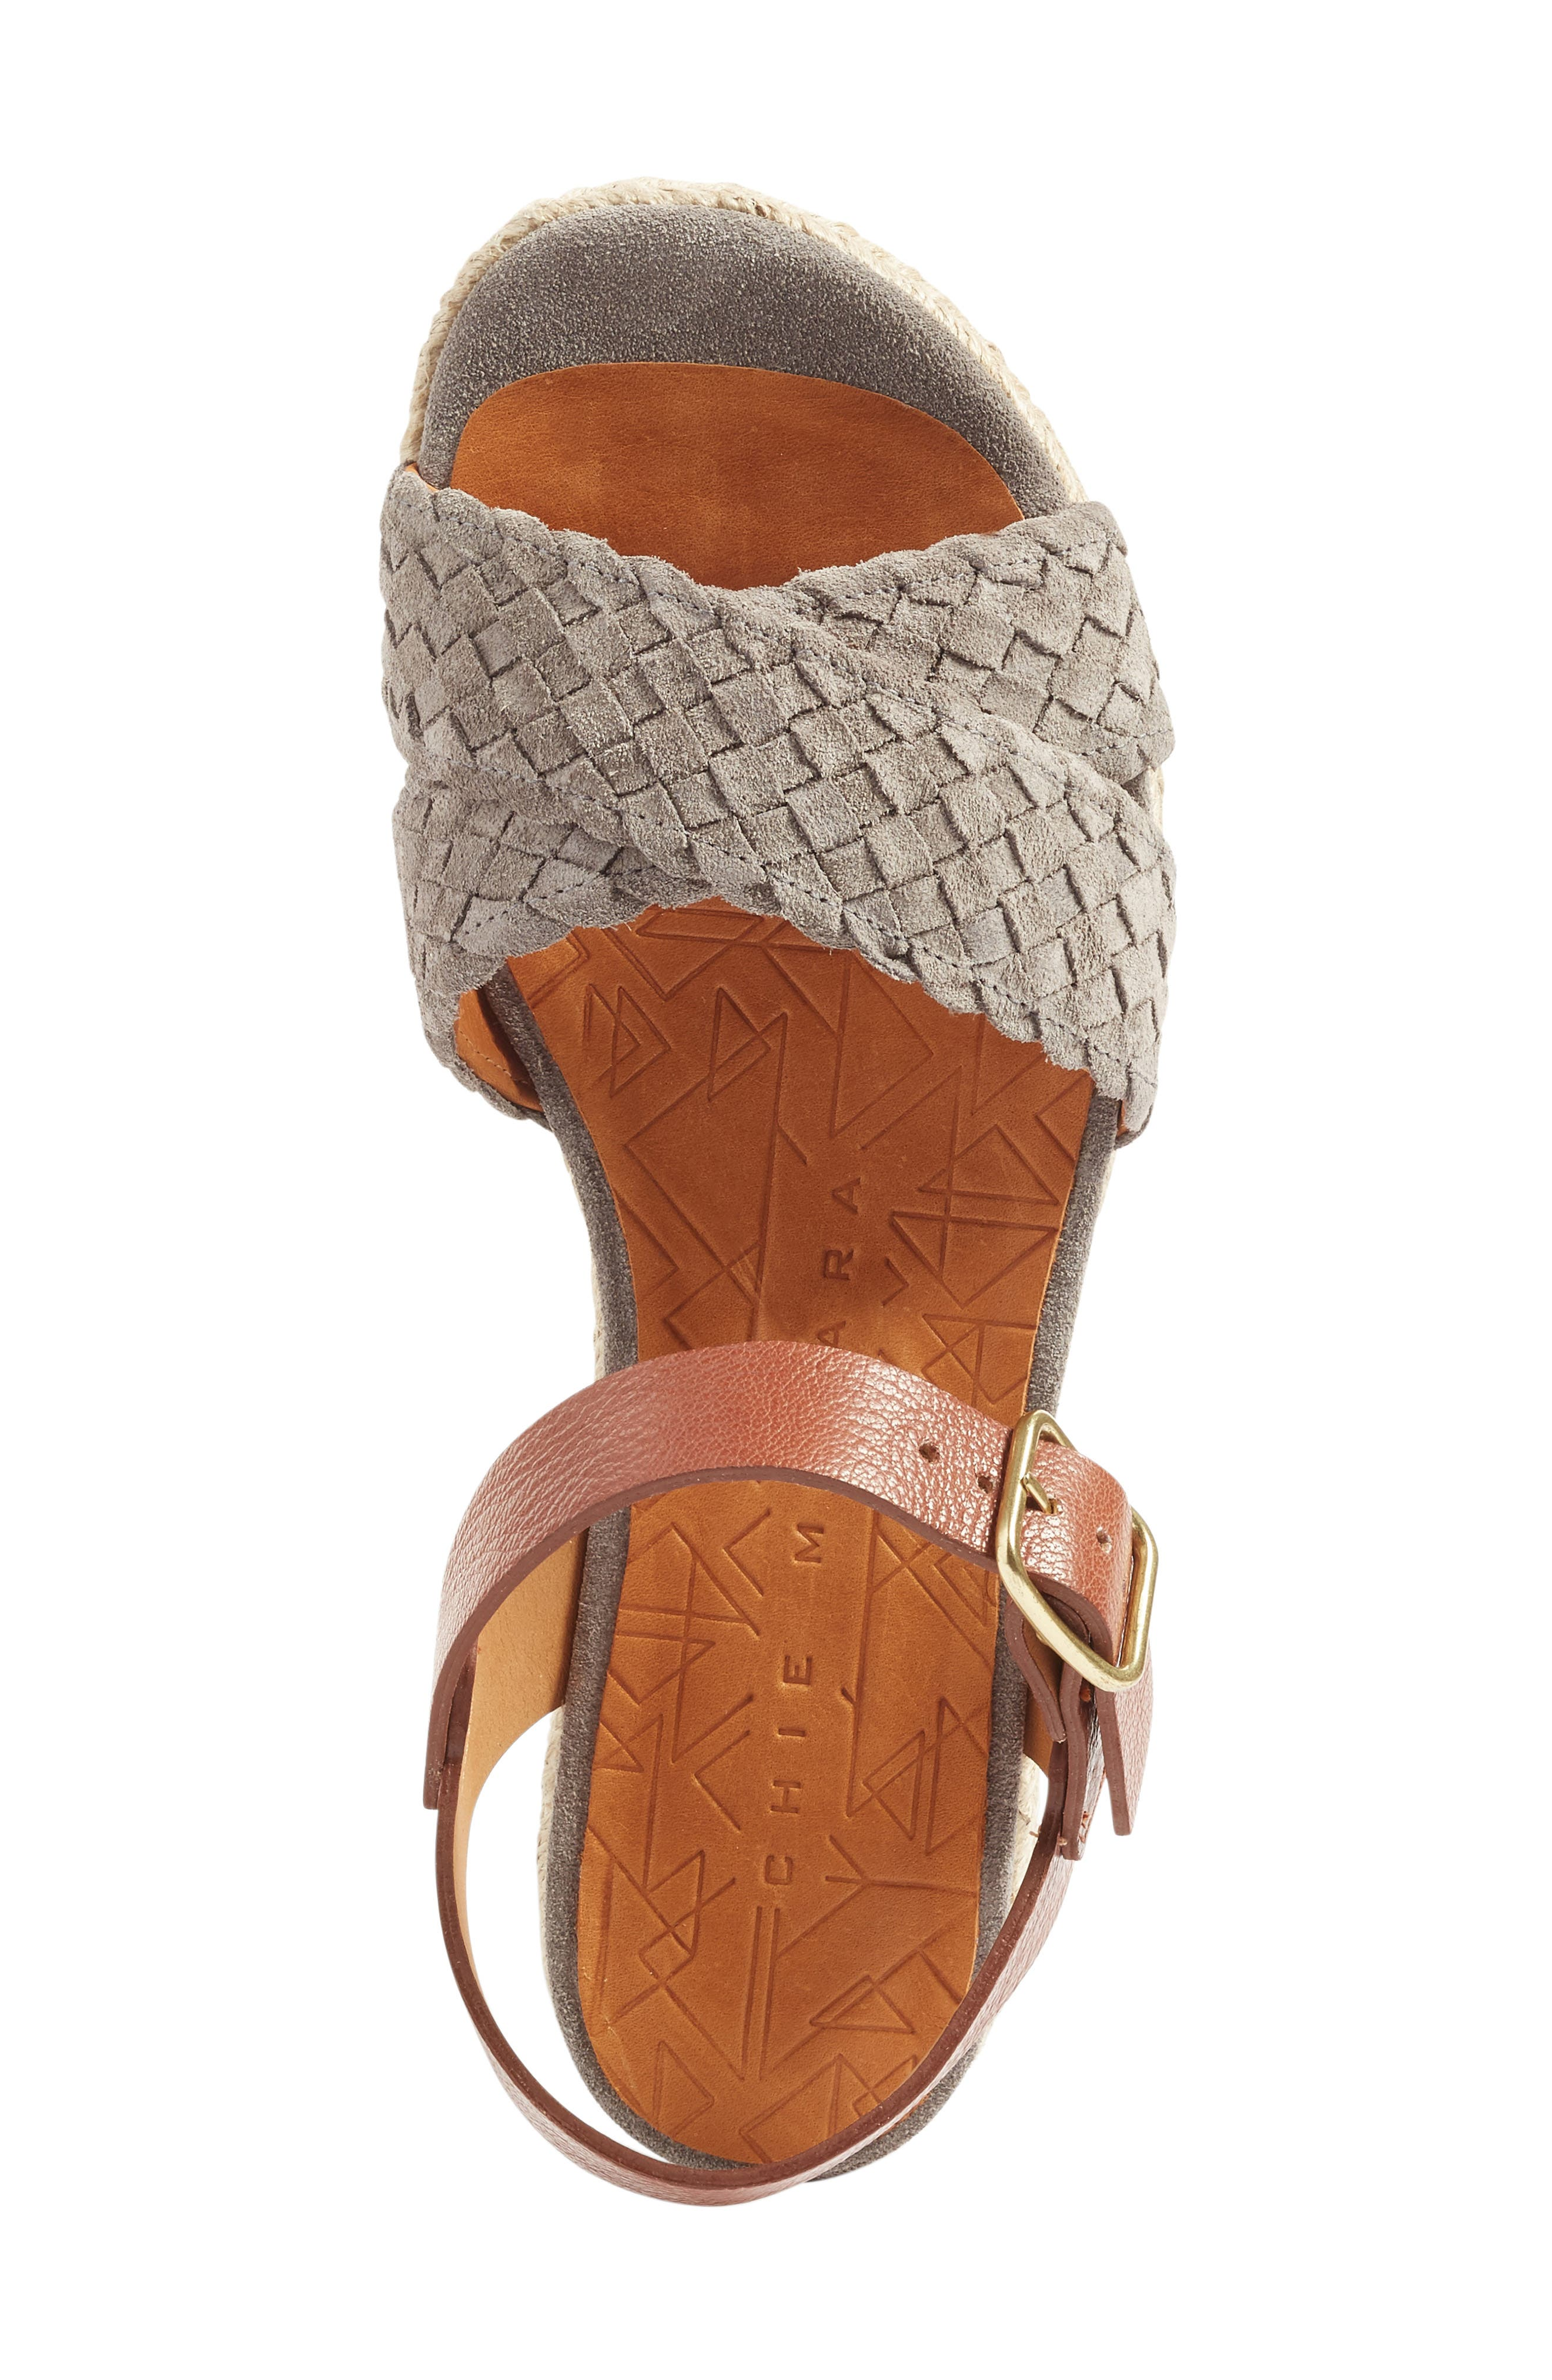 Hena Sandal,                             Alternate thumbnail 3, color,                             Stone/ Castano